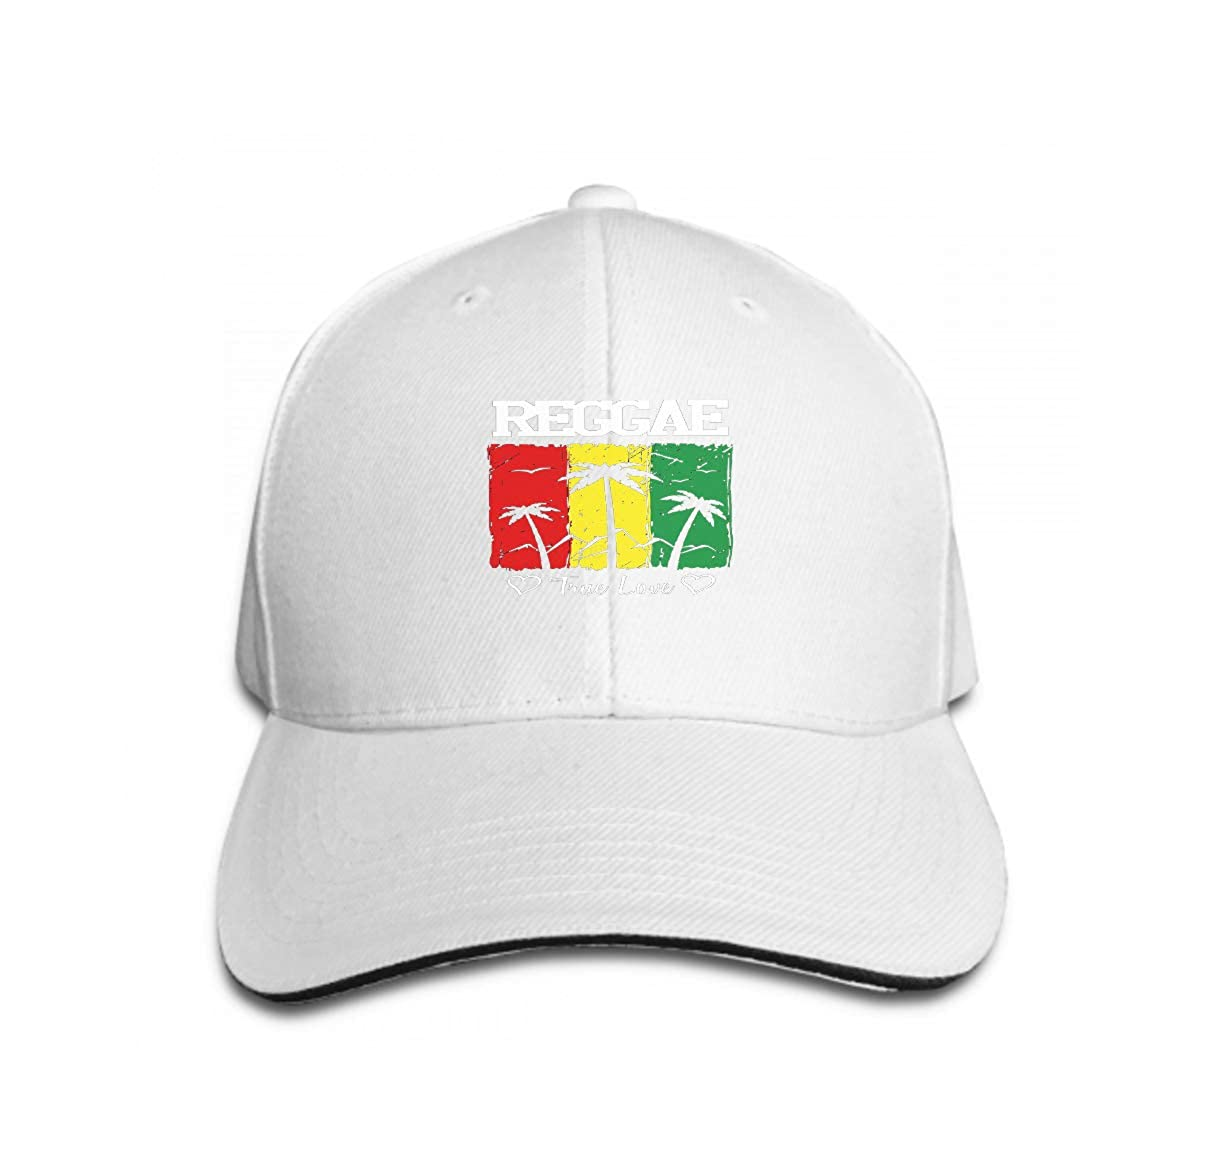 Hip Hop Baseball Cap Adjustable Flat Brim Hat Outdr Sport Baseball ...